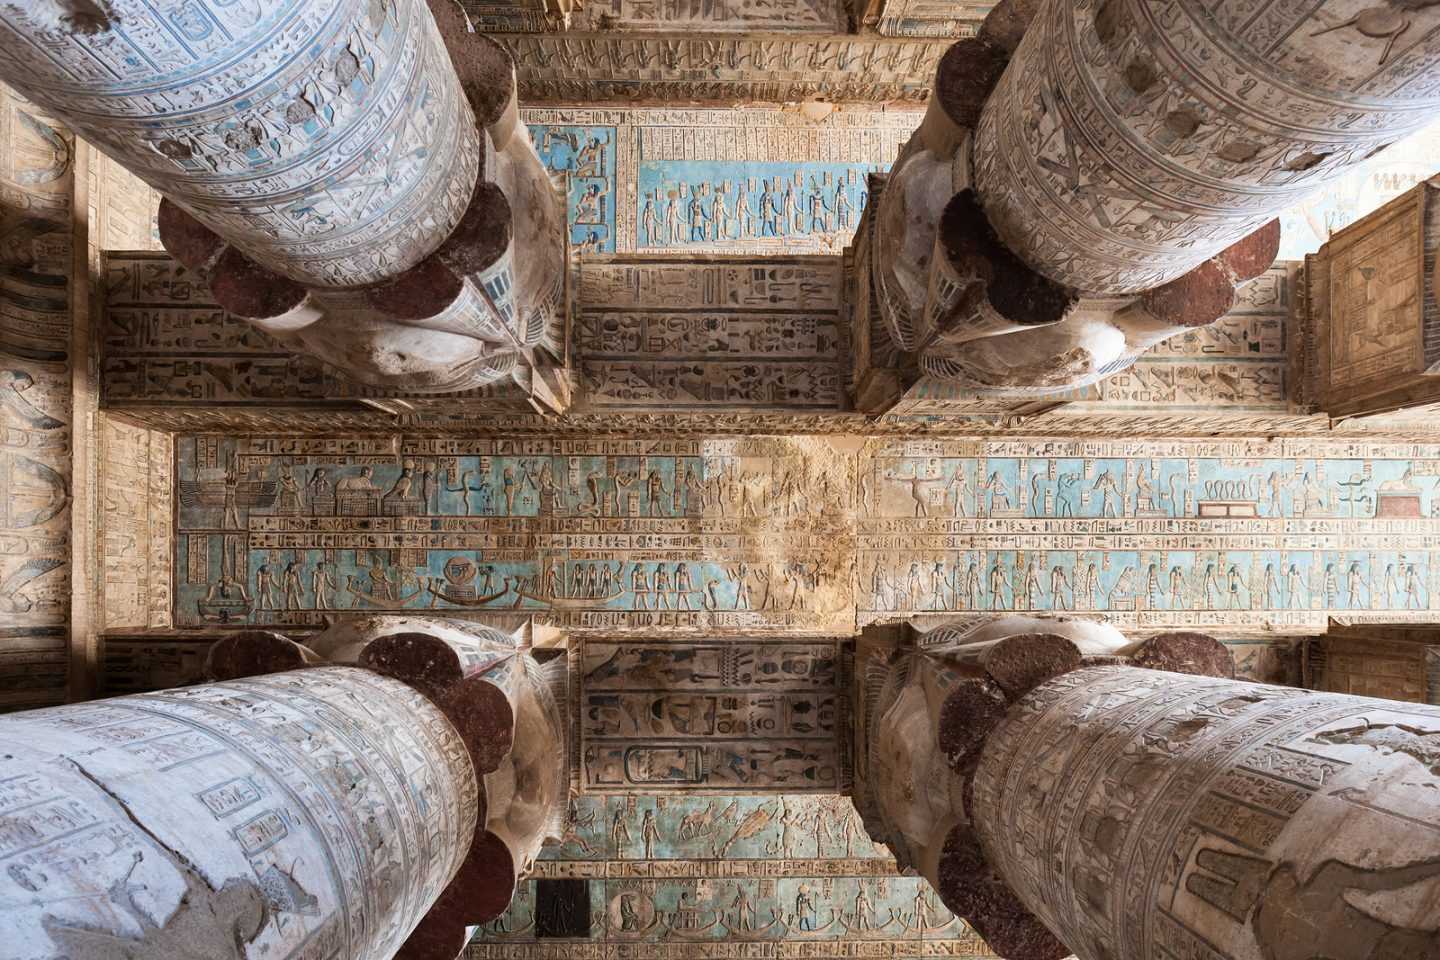 A History of the Temple of Hathor, Dendera